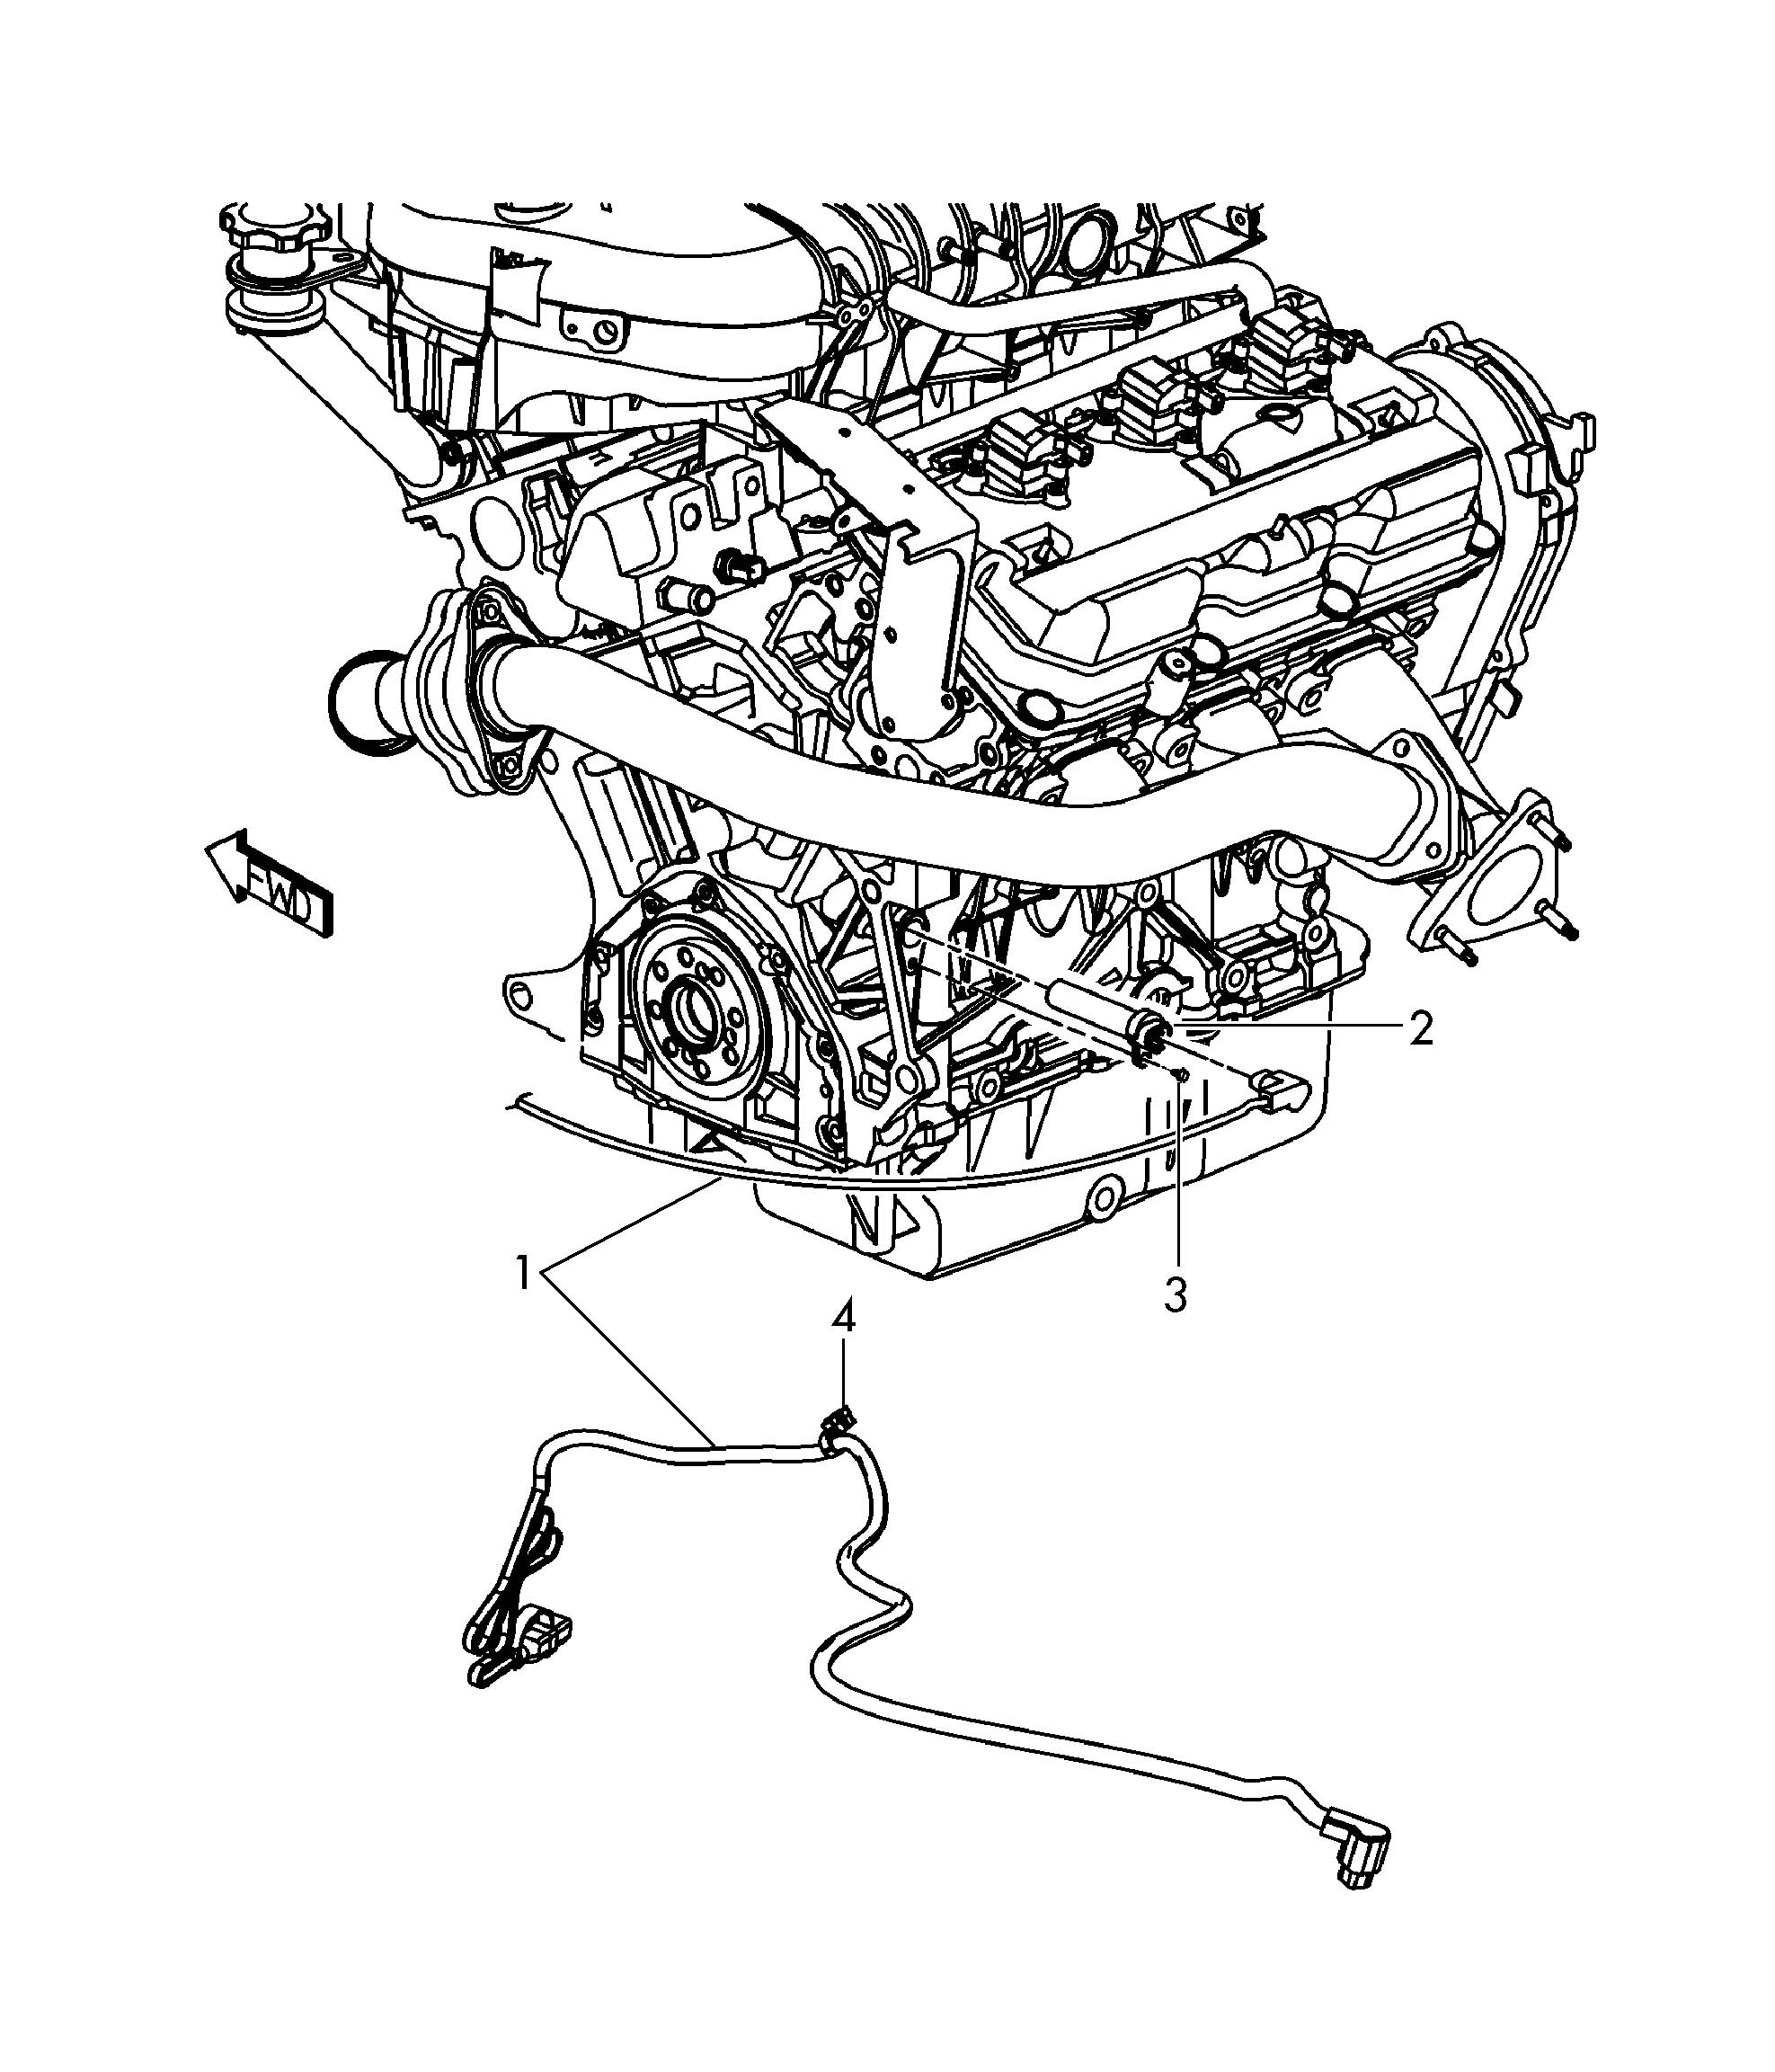 [DIAGRAM] 2010 Volkswagen Routan Engine Diagram FULL